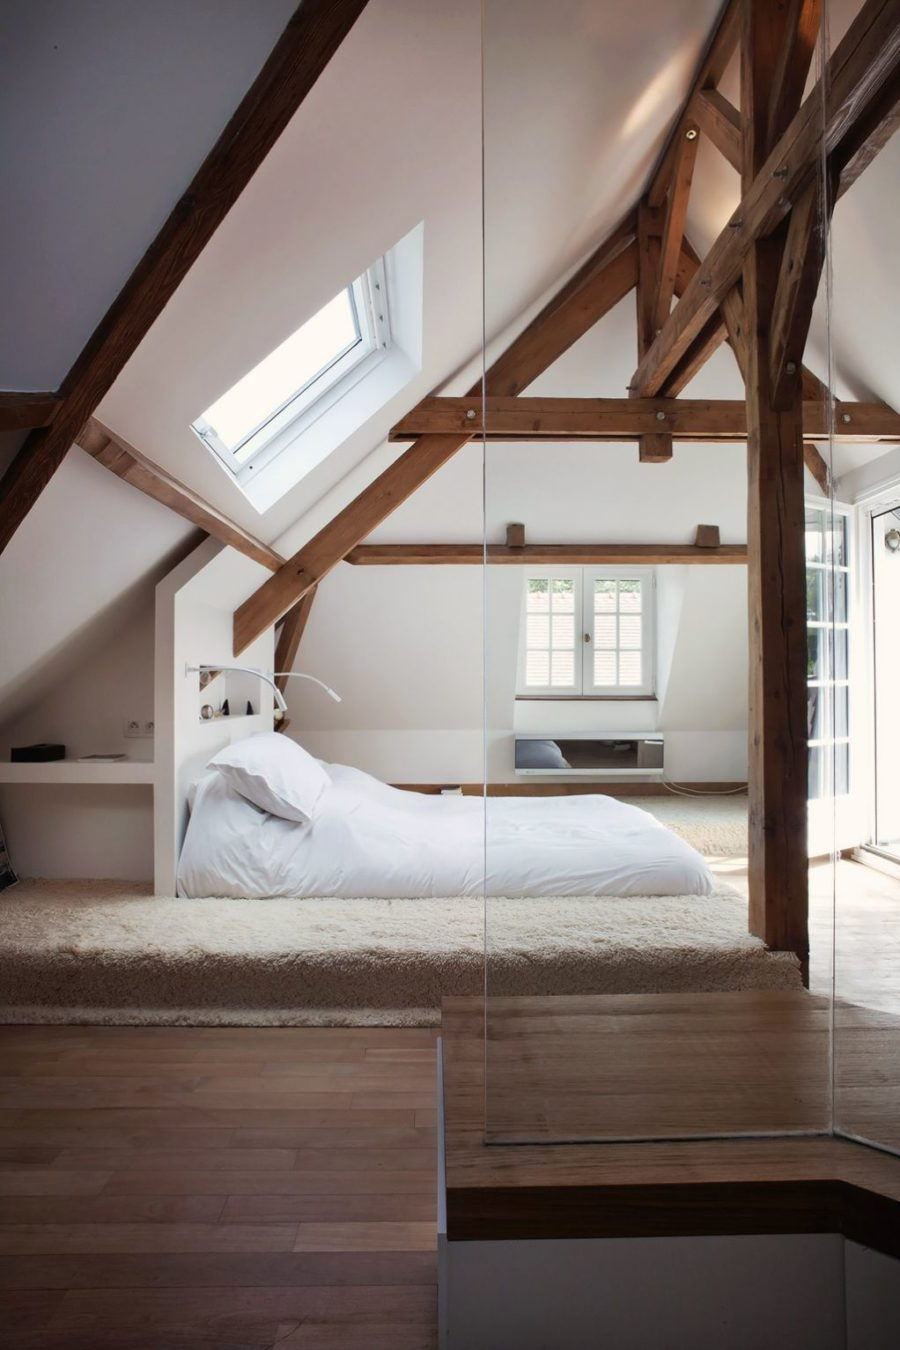 What a cool idea for an attic space. Stained wood beams are a grand measure that really helps get that wow-effect.